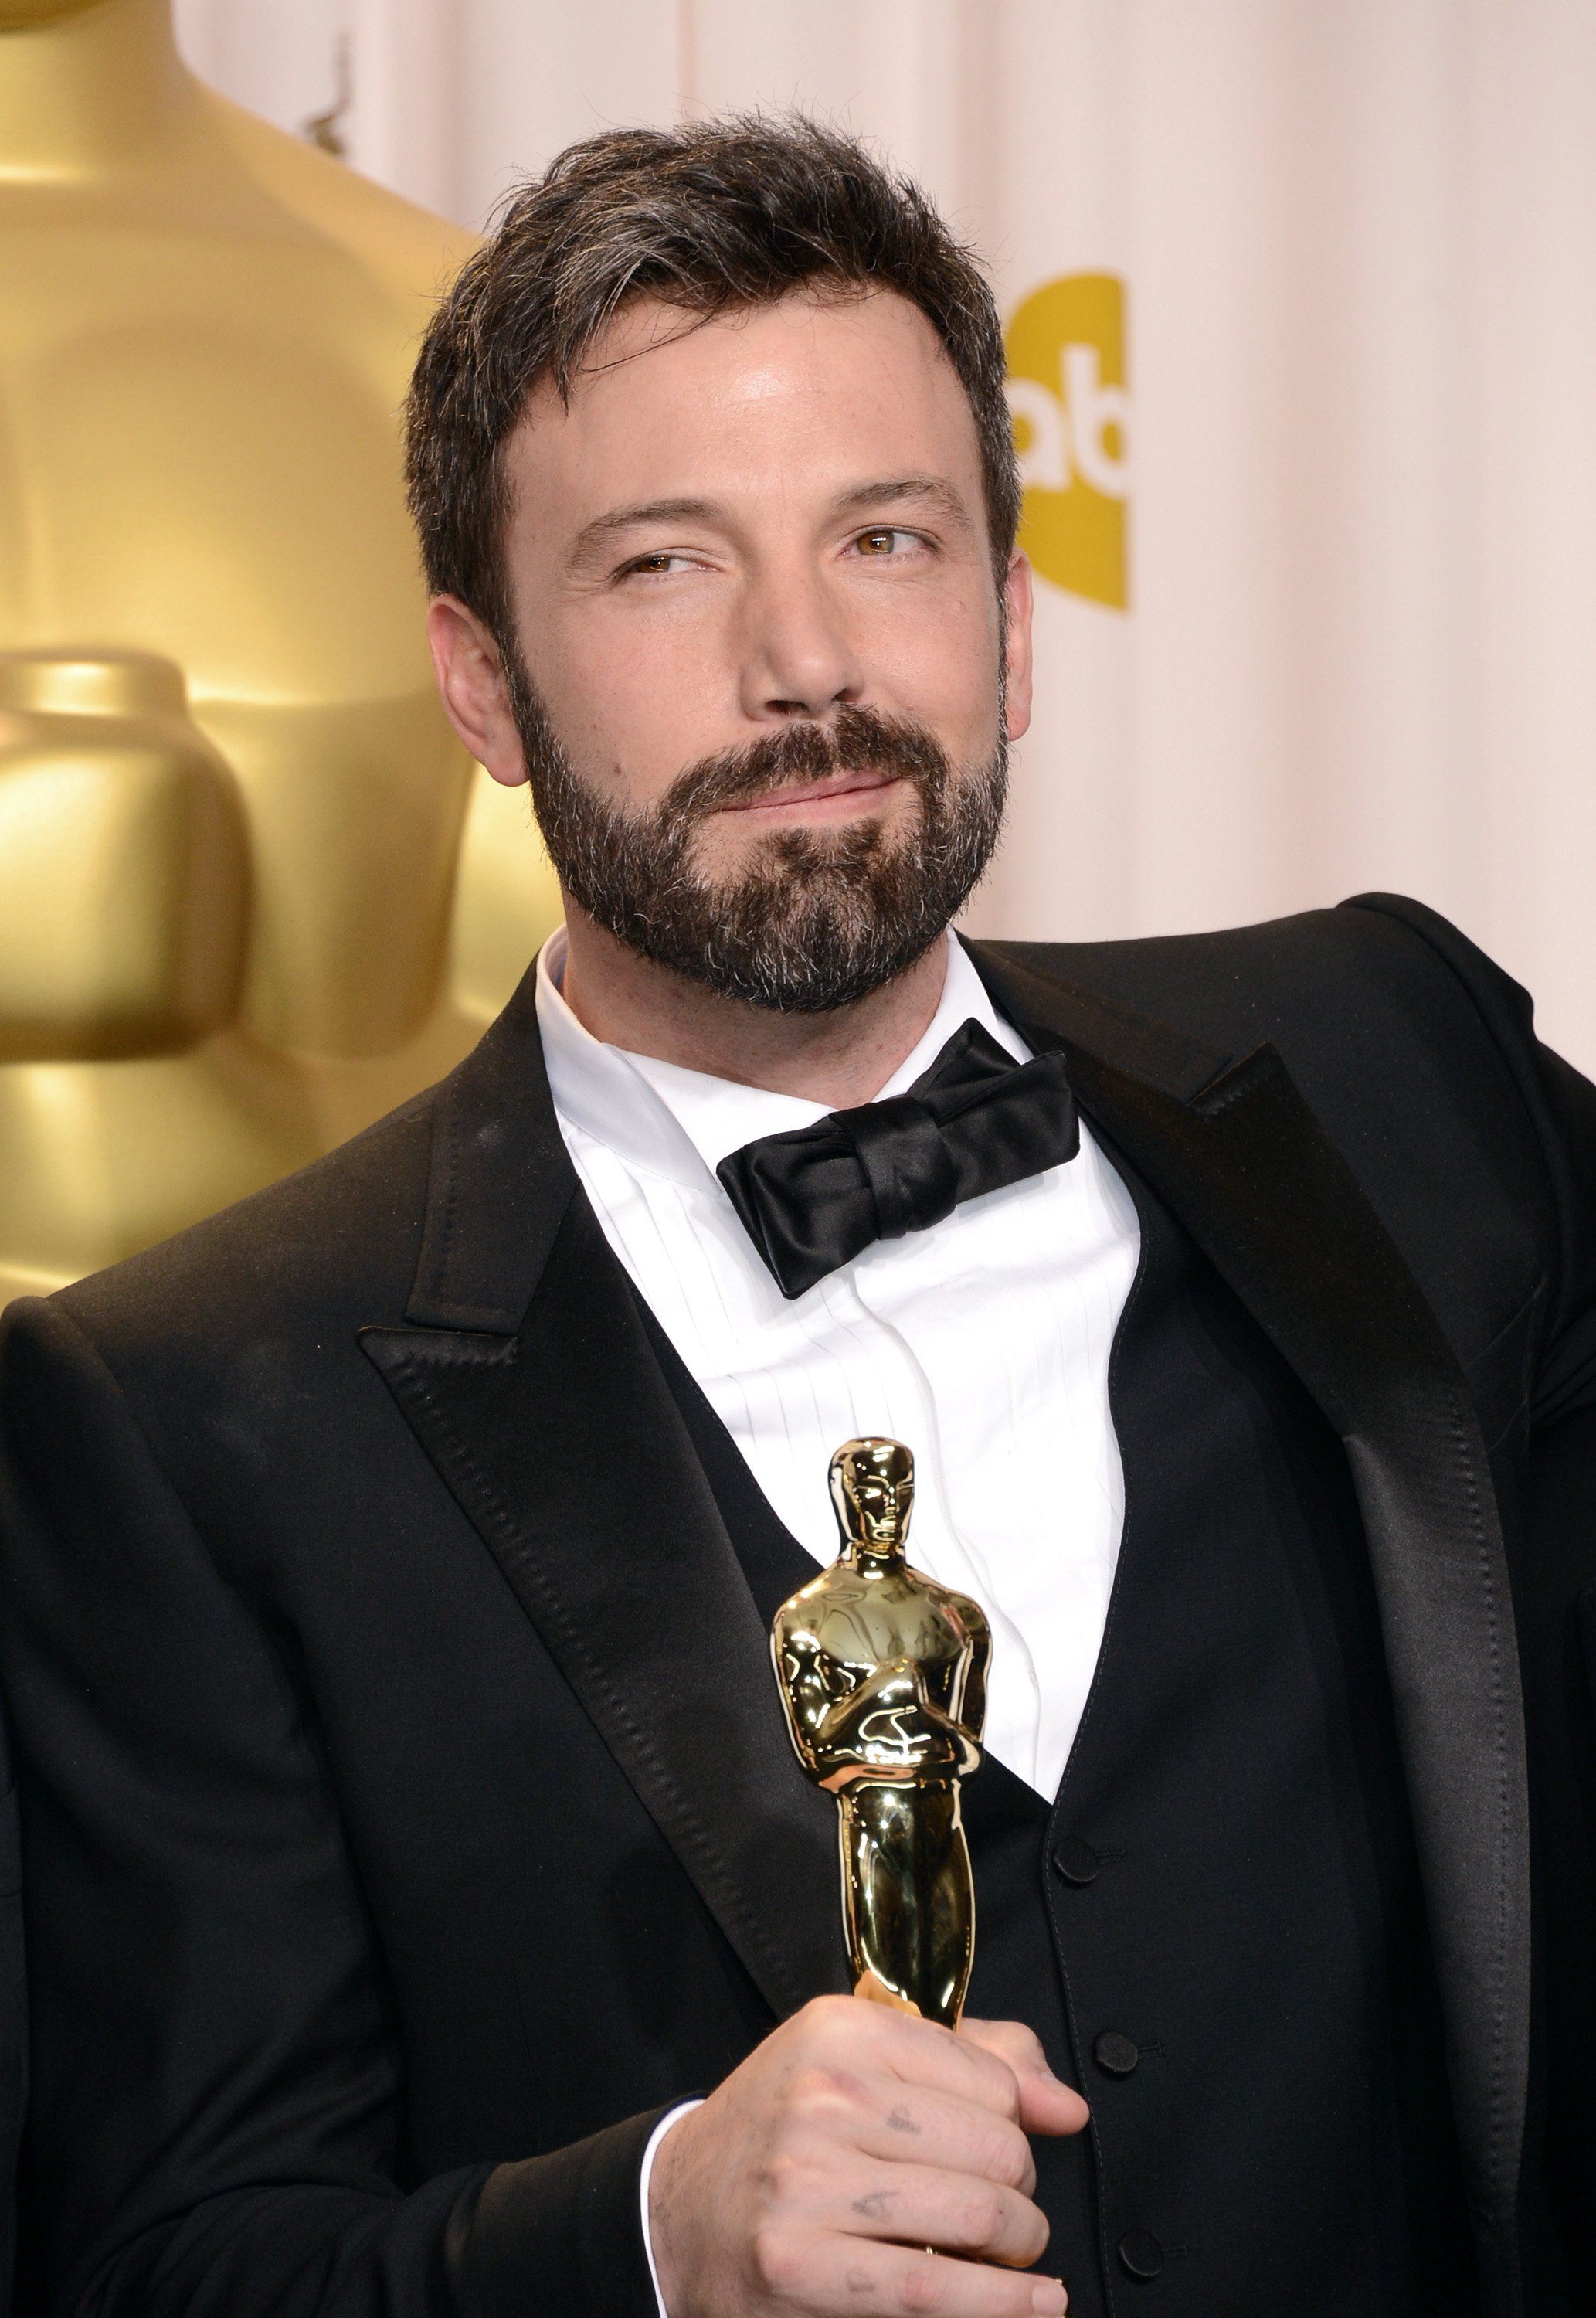 Ben Affleck poses in the press room during the Oscars held at Loews Hollywood Hotel on February 24, 2013. | Source: Getty Images